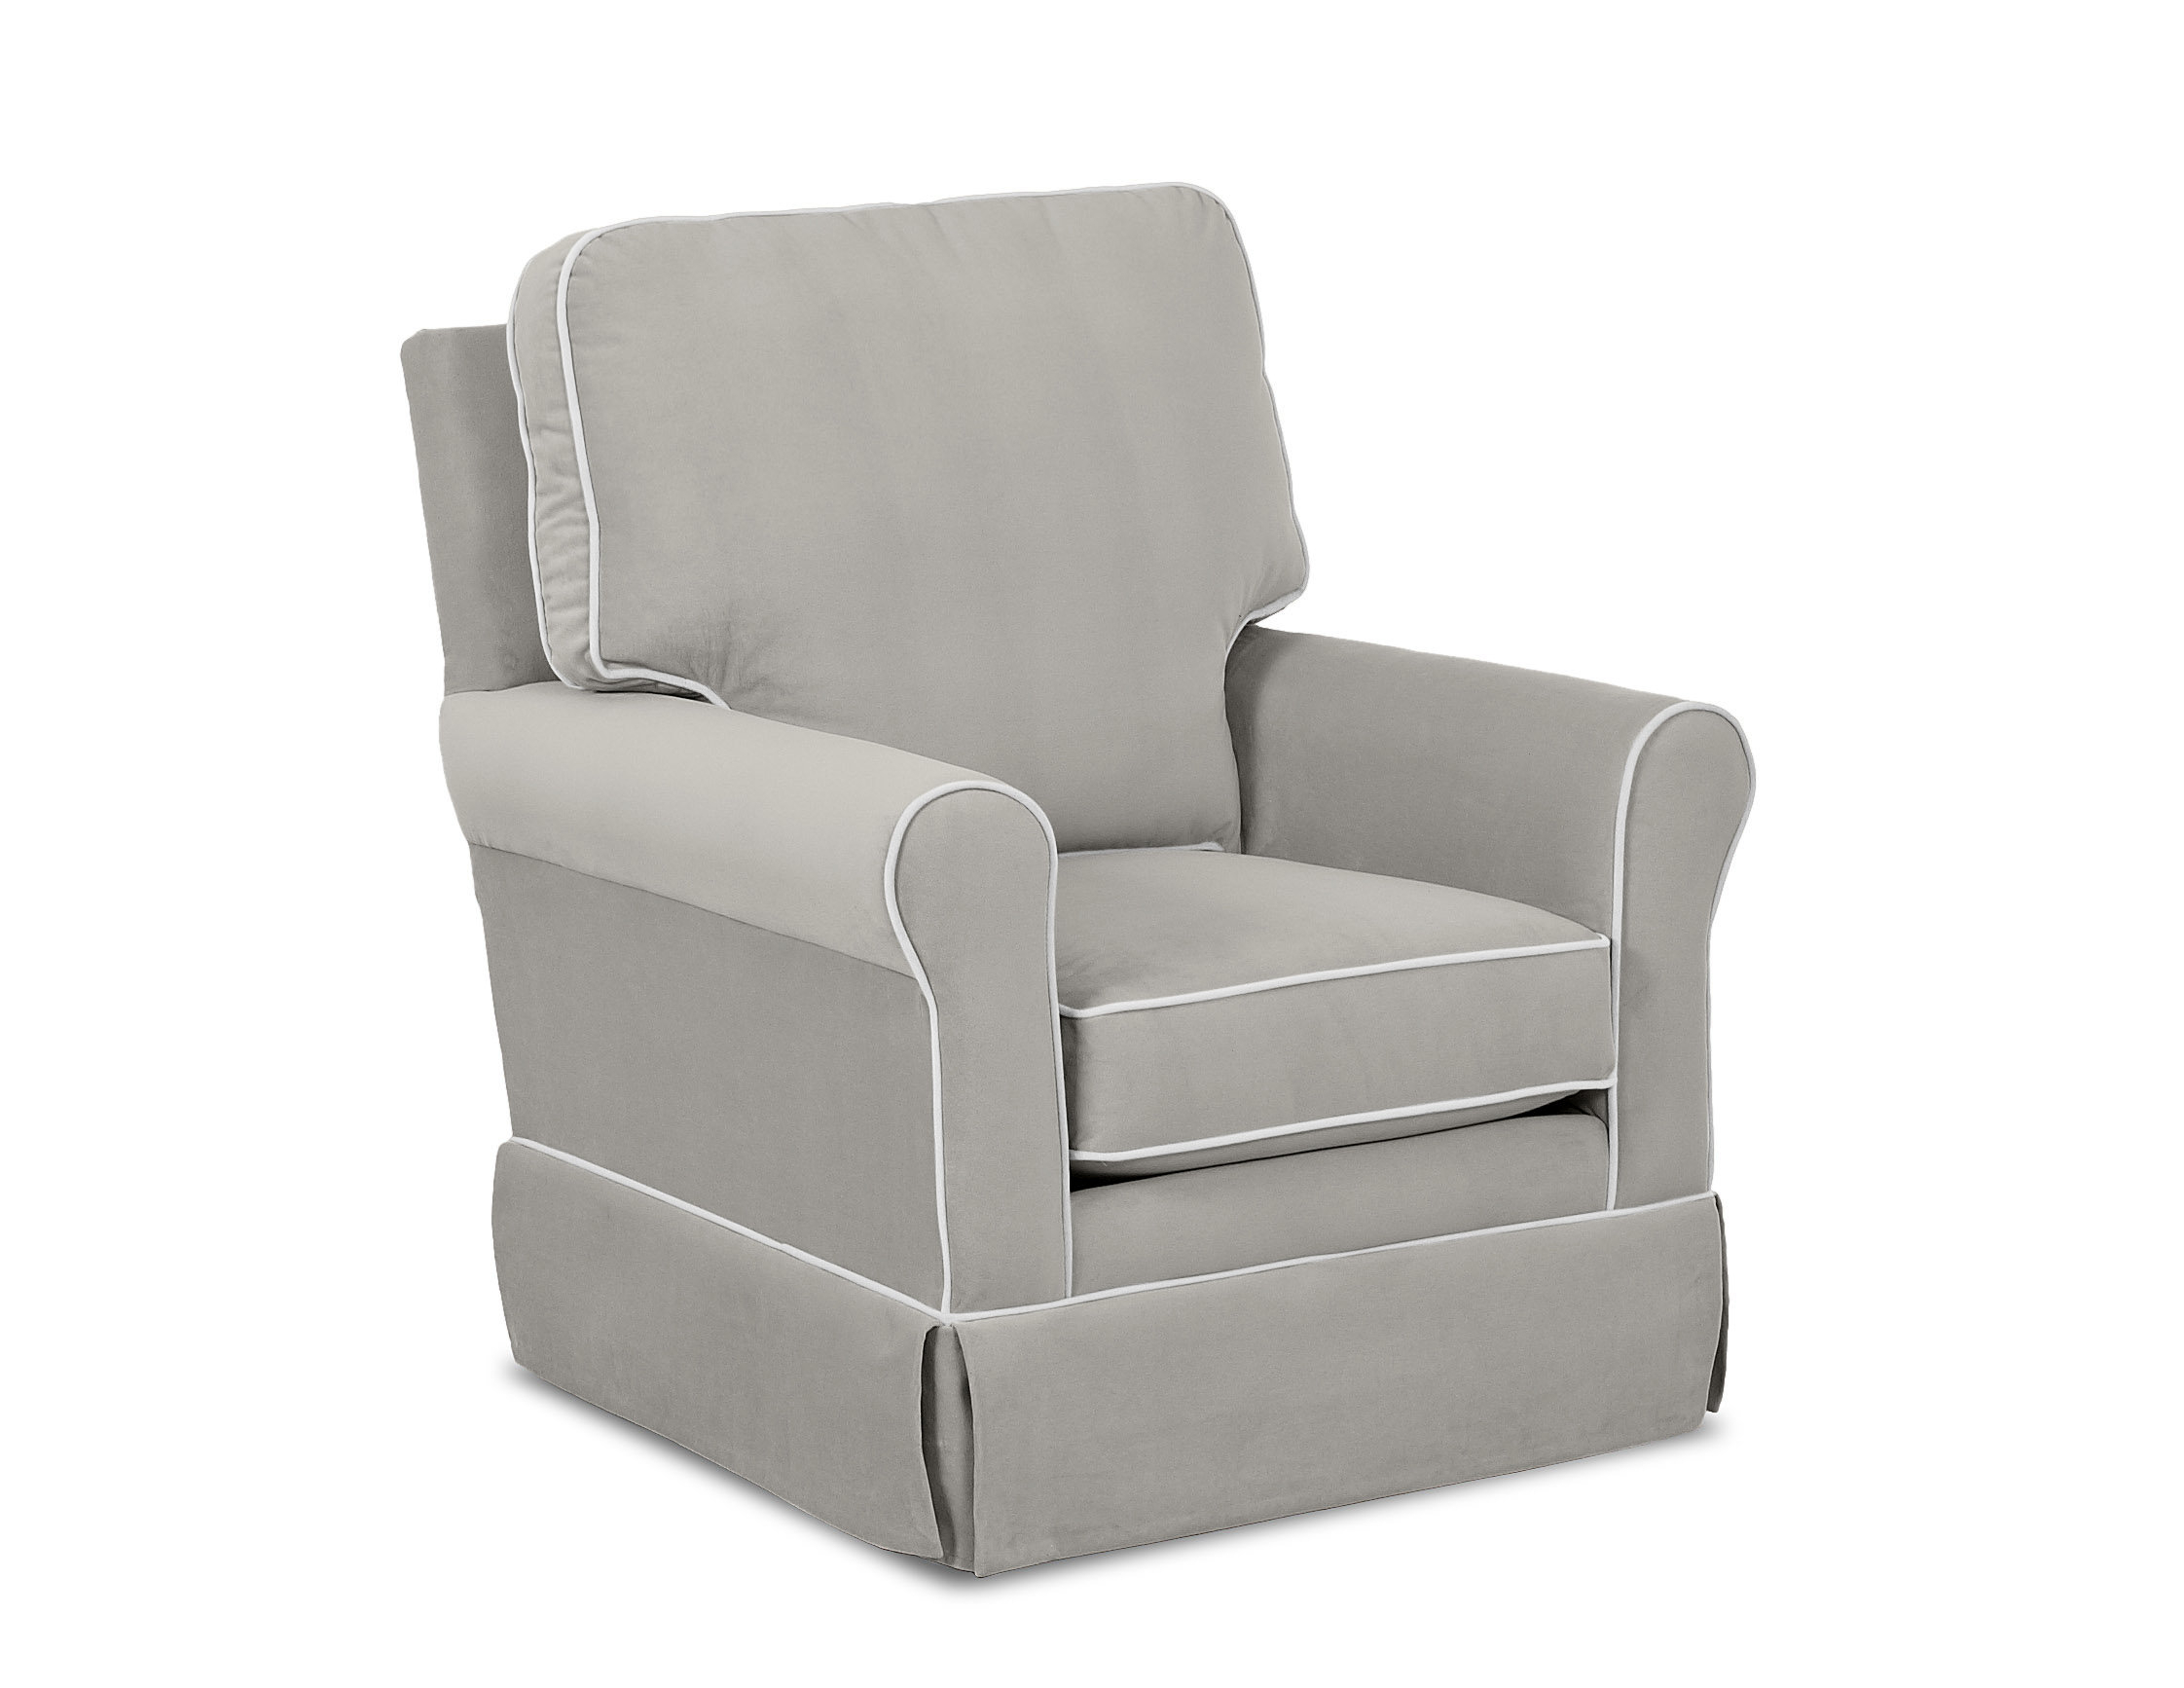 Wayfair Custom Upholstery™ Bridgeport Swivel Glider With Contrasting Inside Katrina Beige Swivel Glider Chairs (Image 17 of 20)